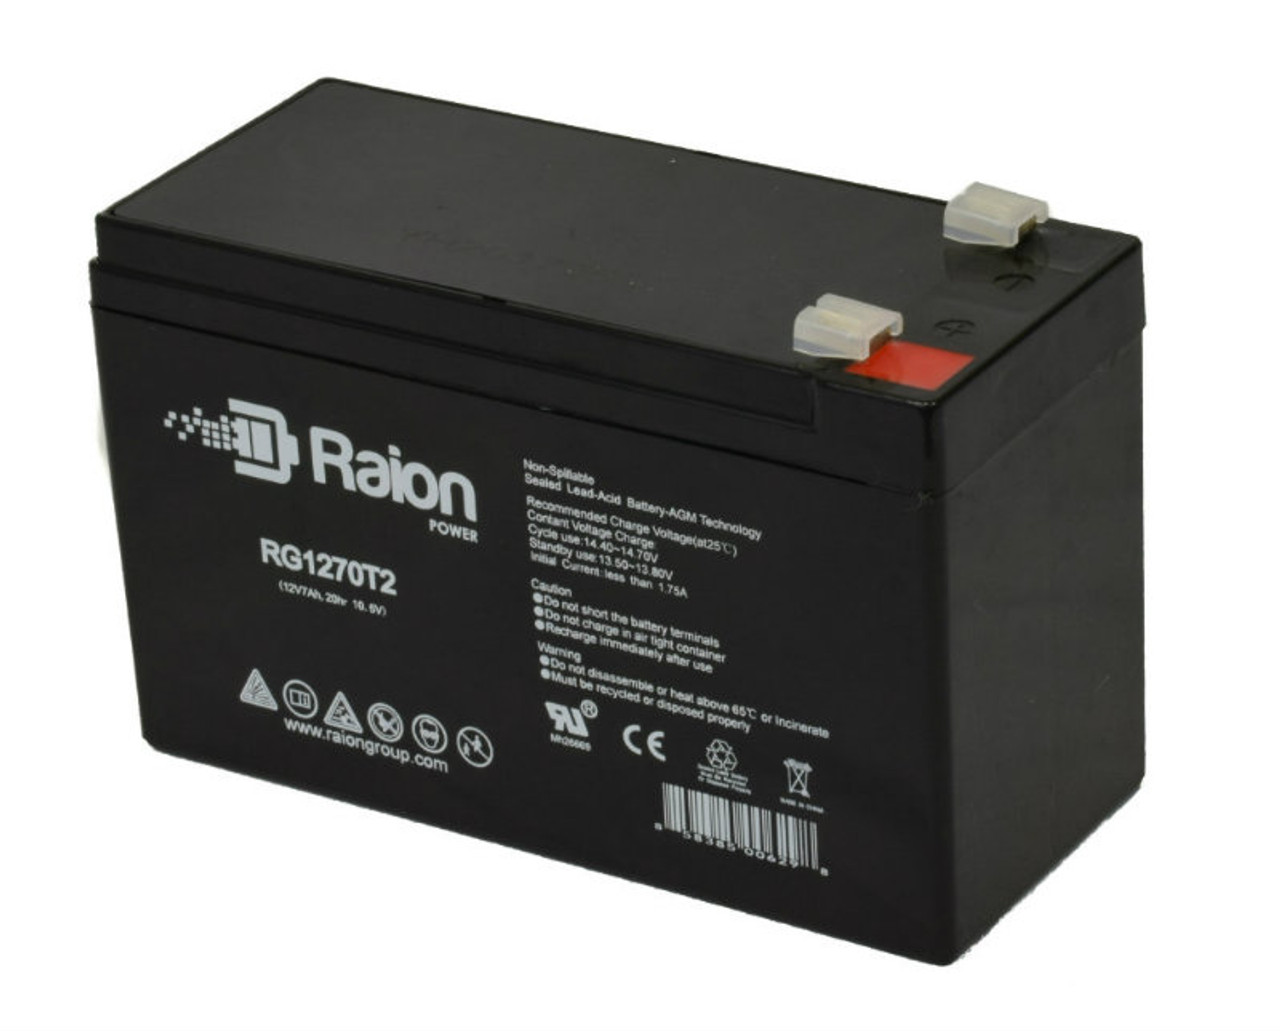 Raion Power RG1270T1 Replacement Battery for ELK Battery ELK-1280